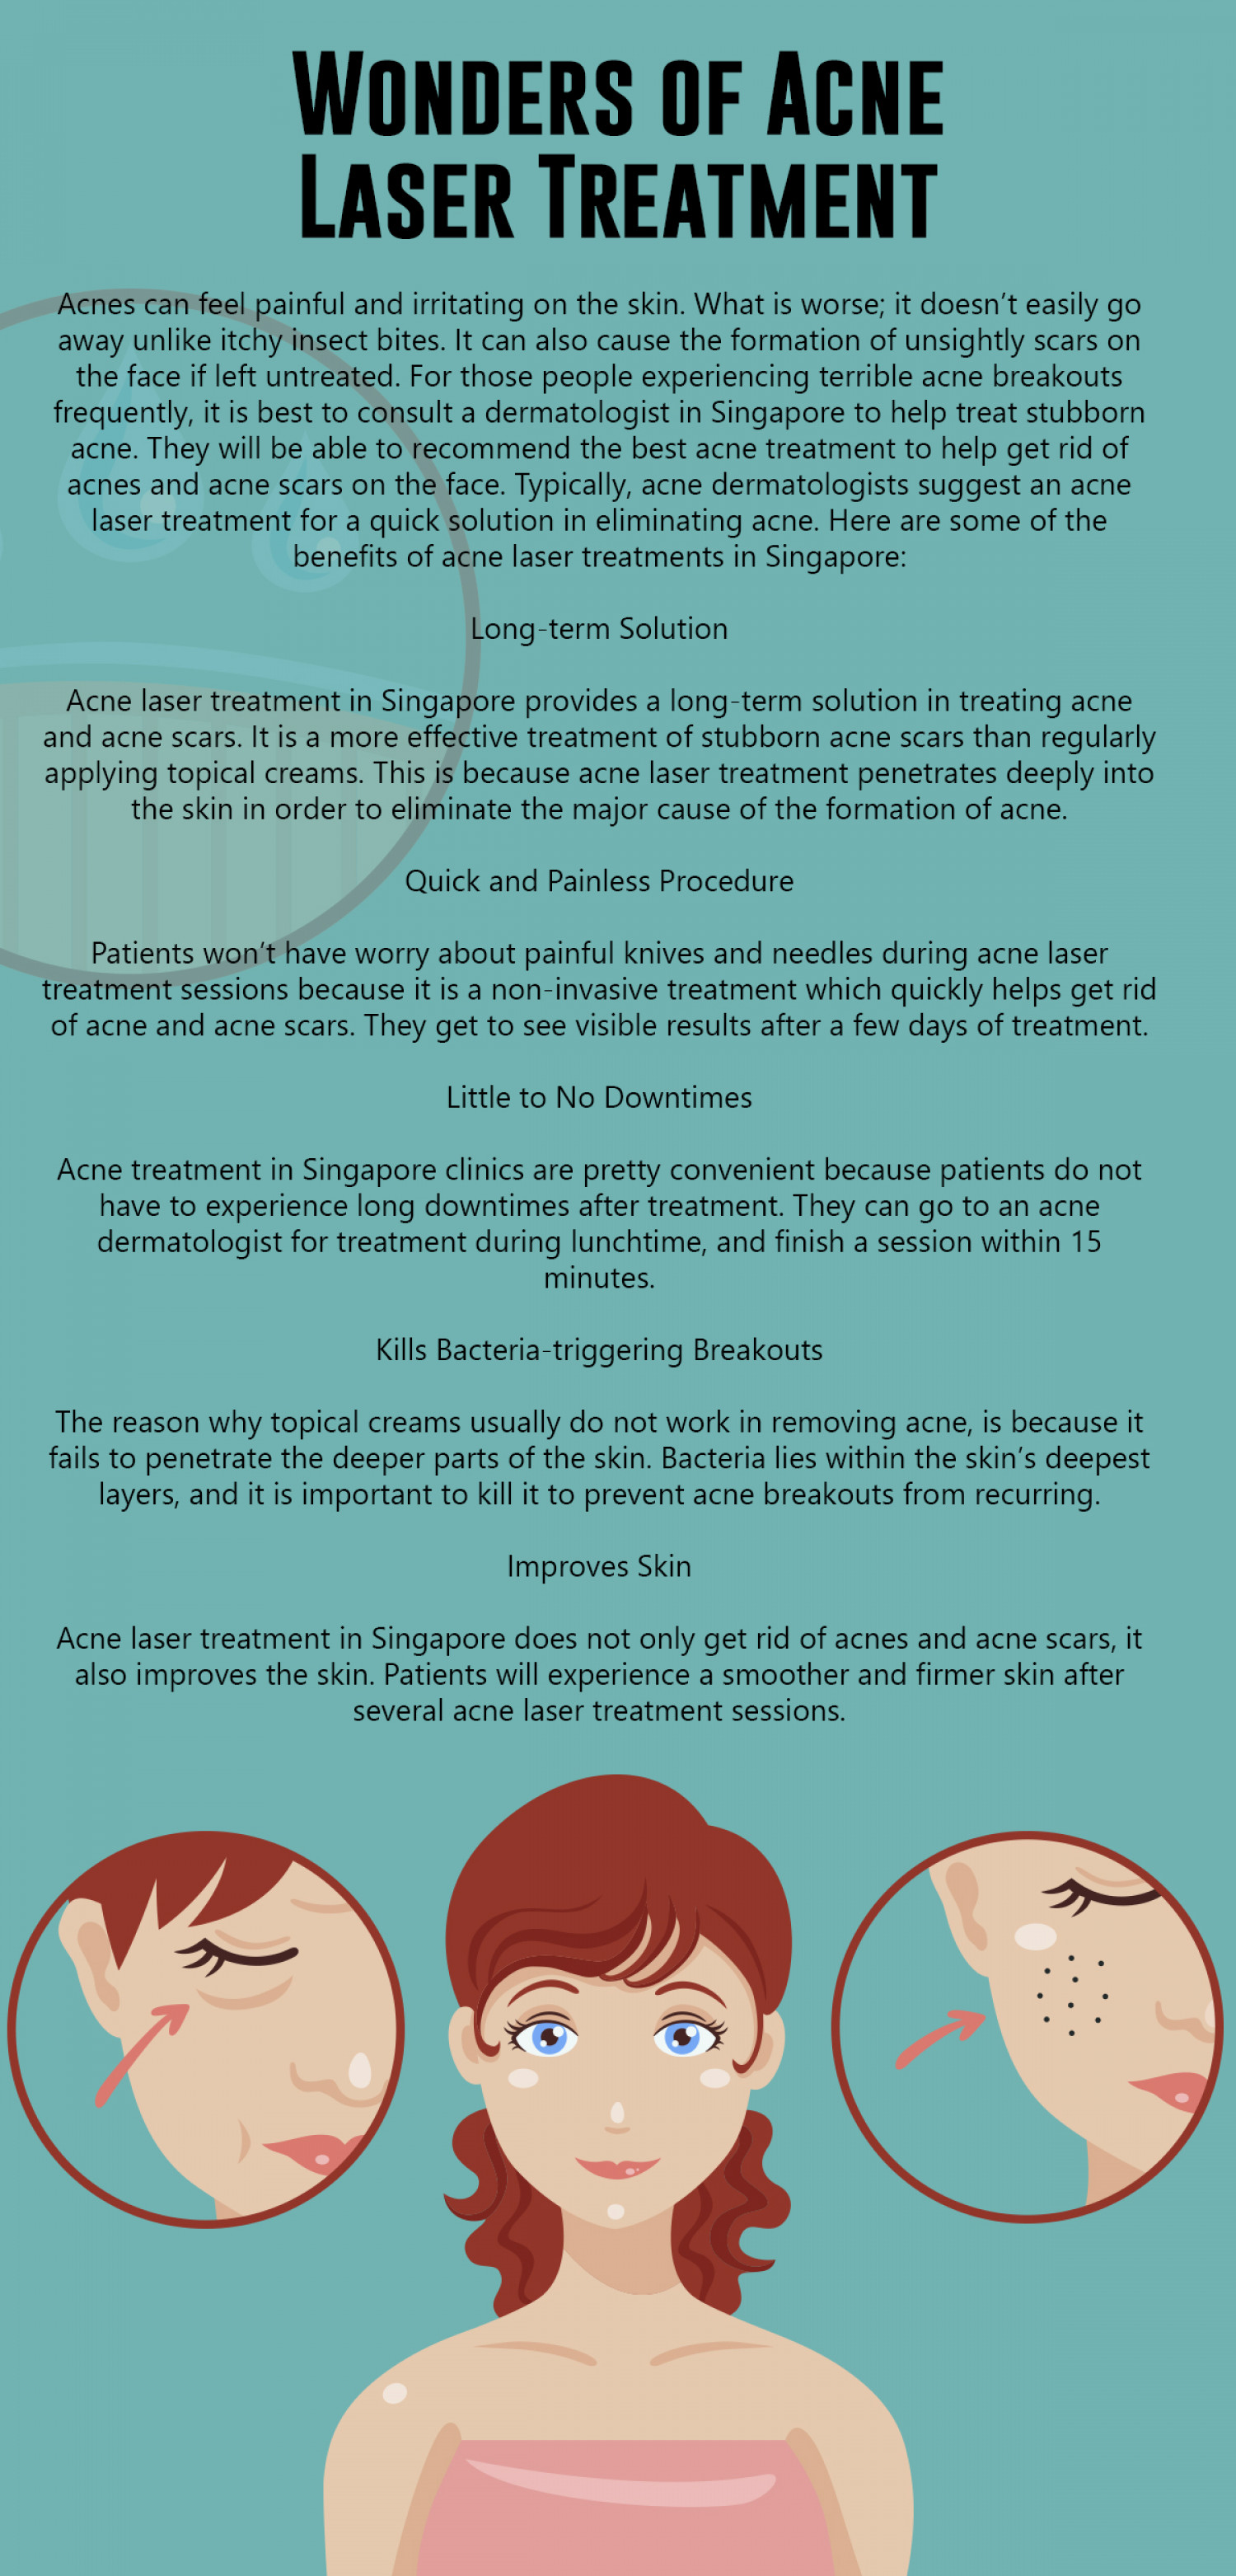 Wonders of Acne Laser Treatment Infographic